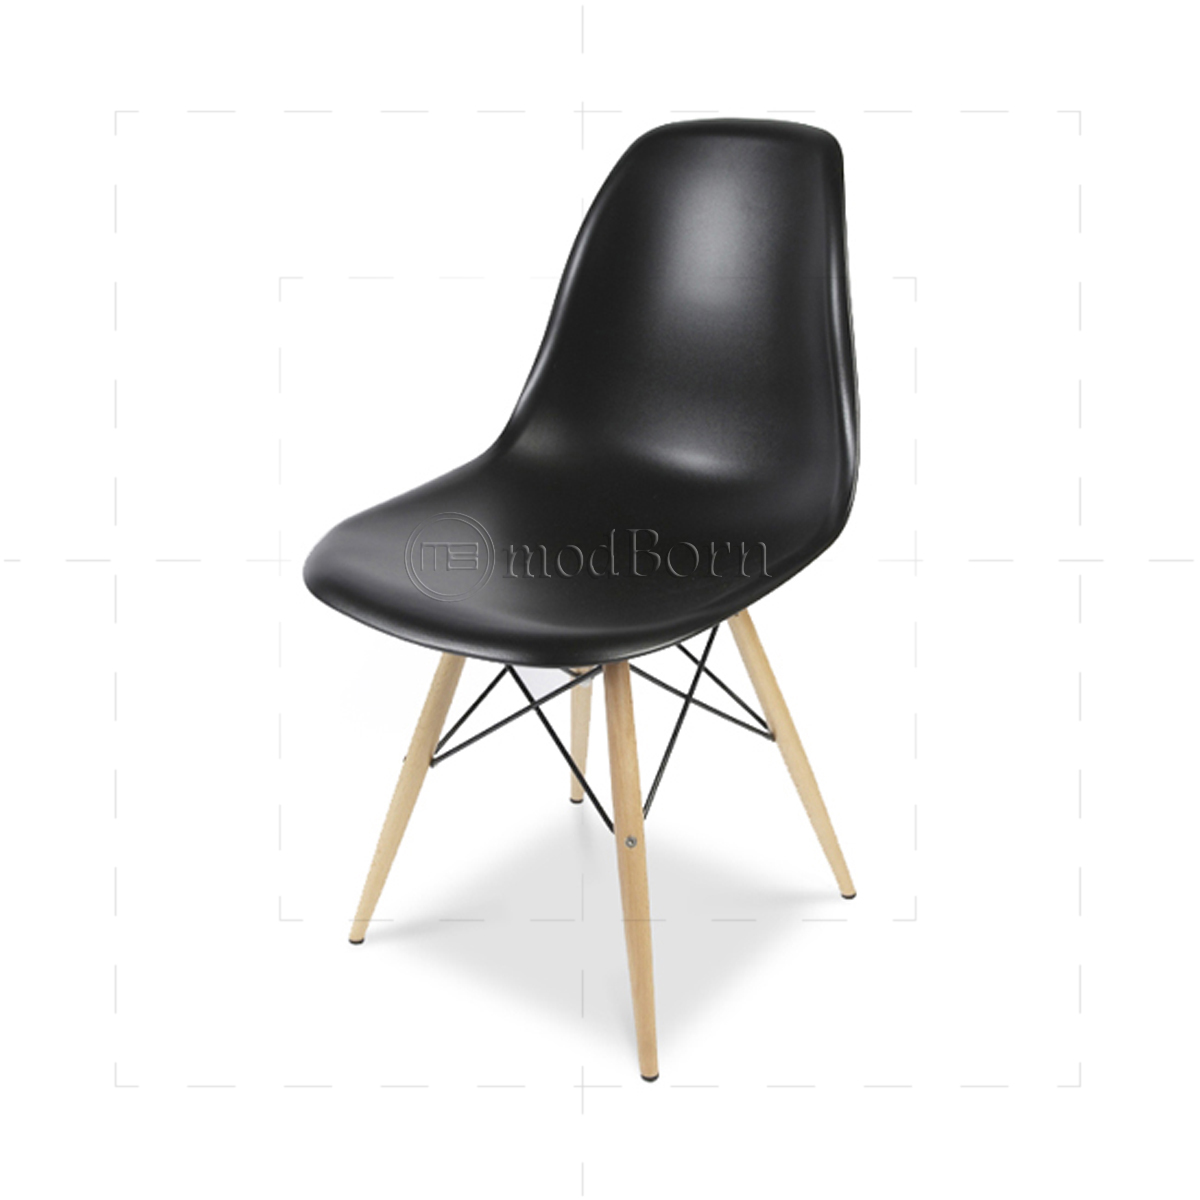 Eames style dining dsw chair black replica - Chaise eames belgique ...